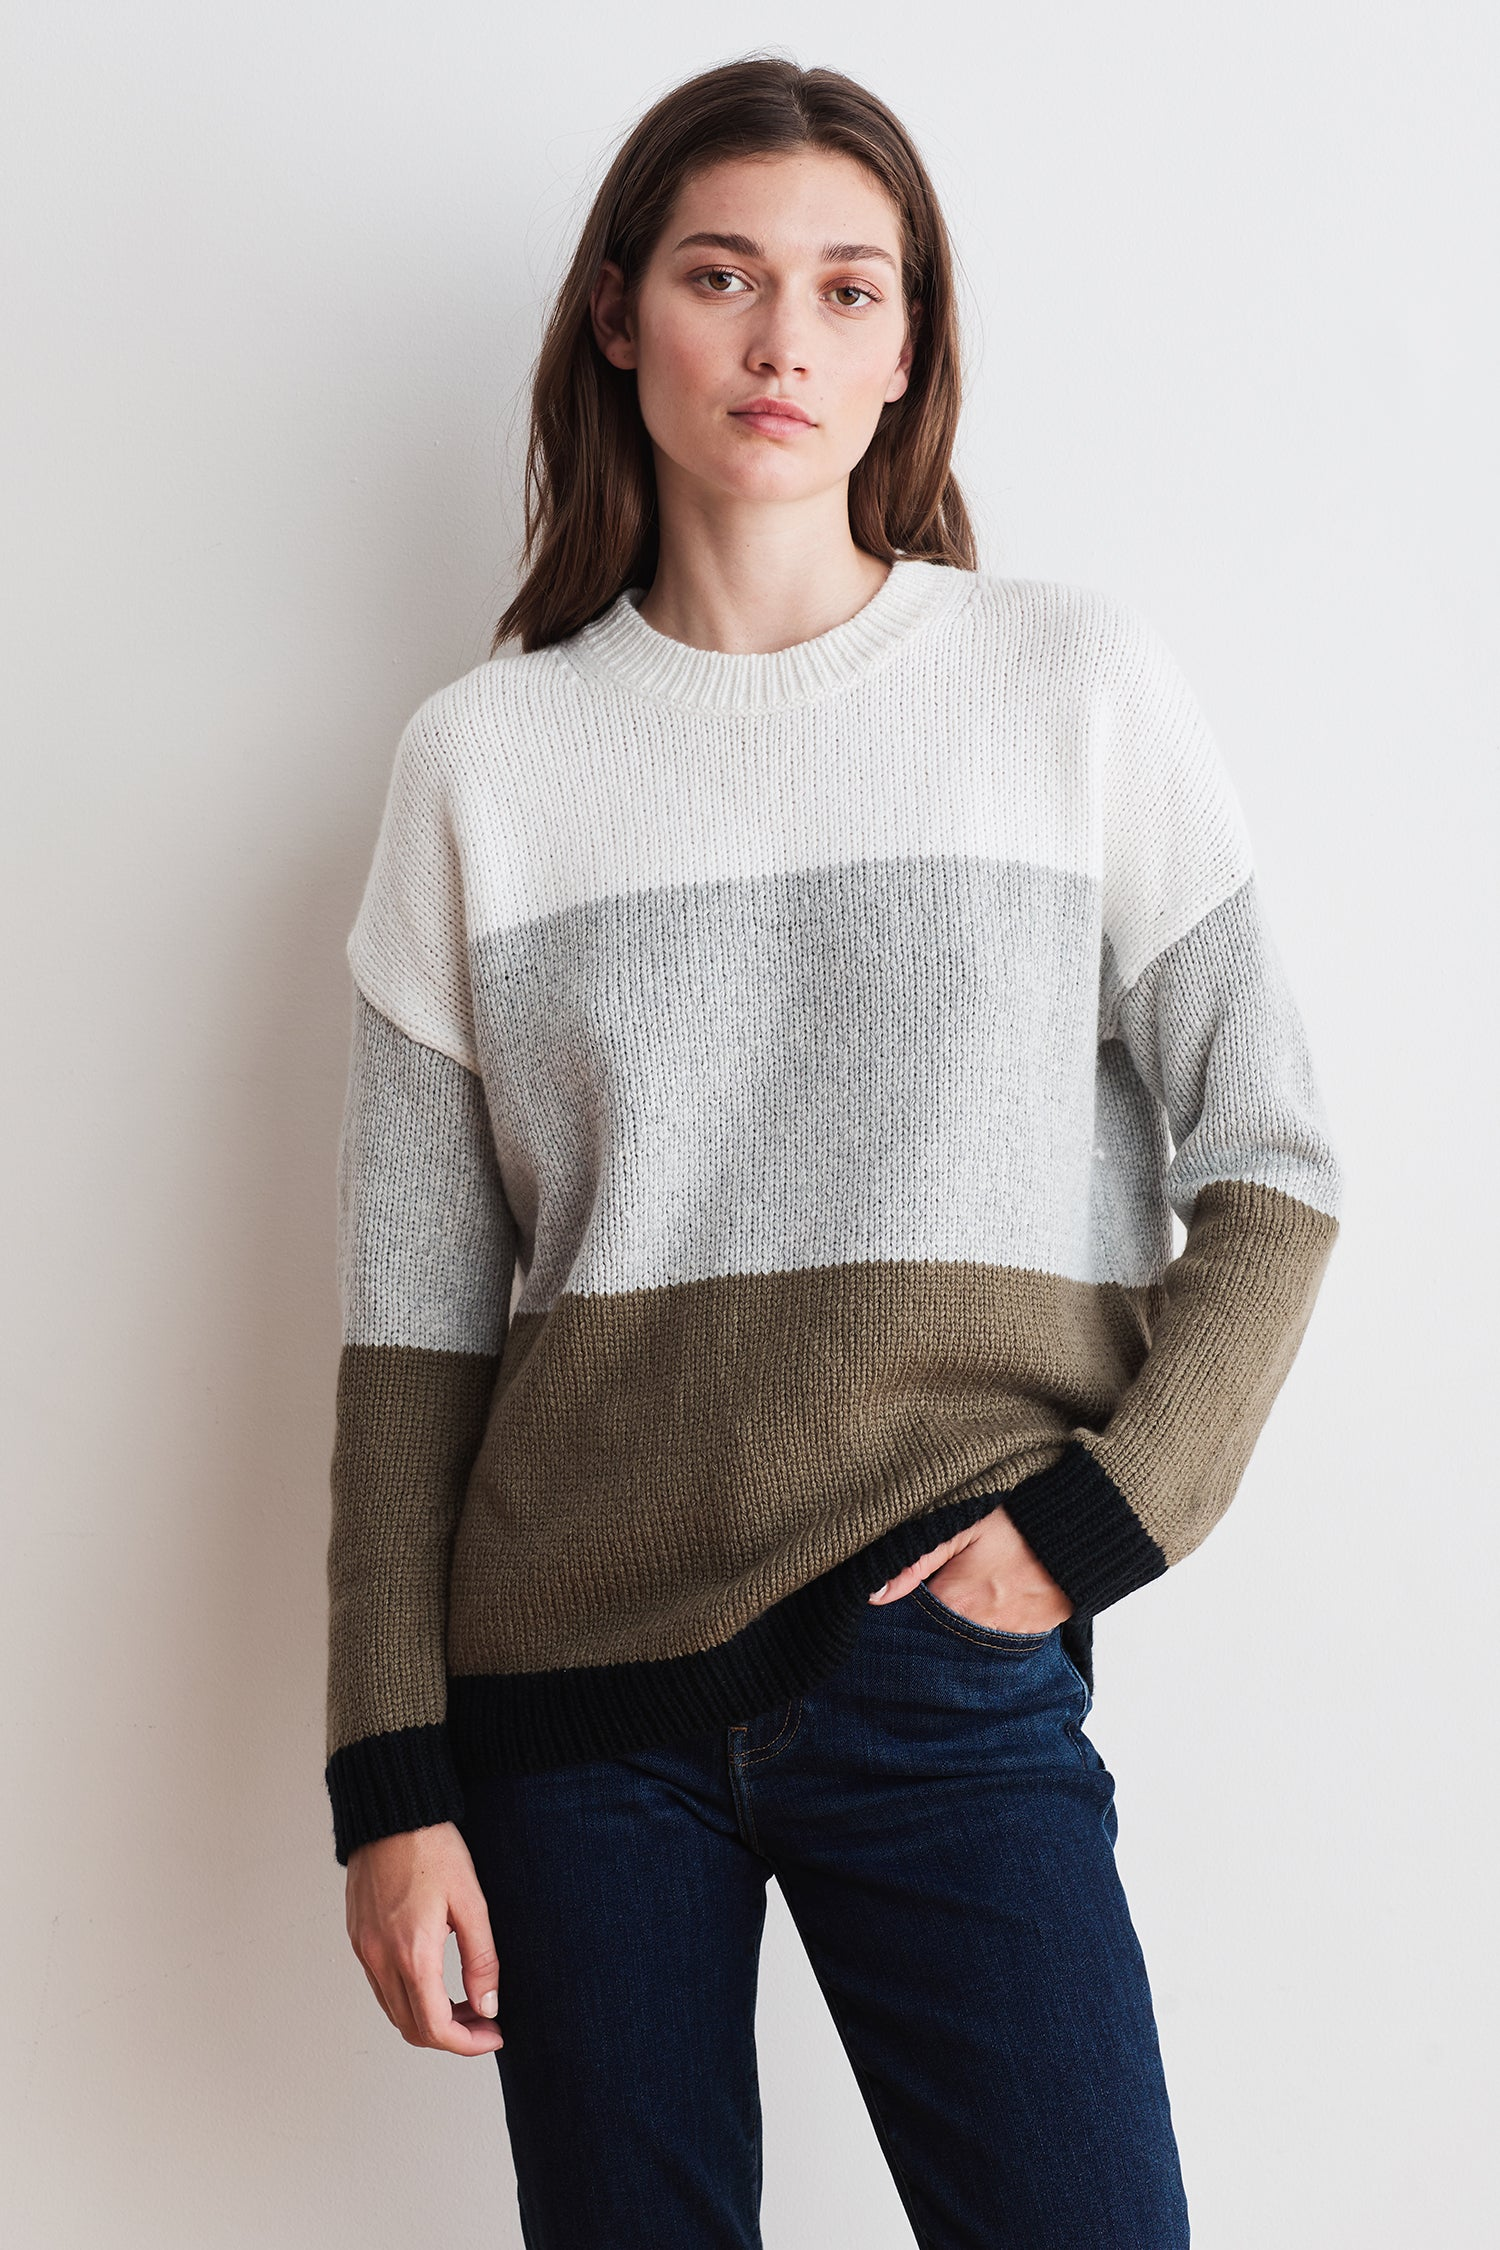 ALESSIA NOVELTY SWEATER IN MULTI